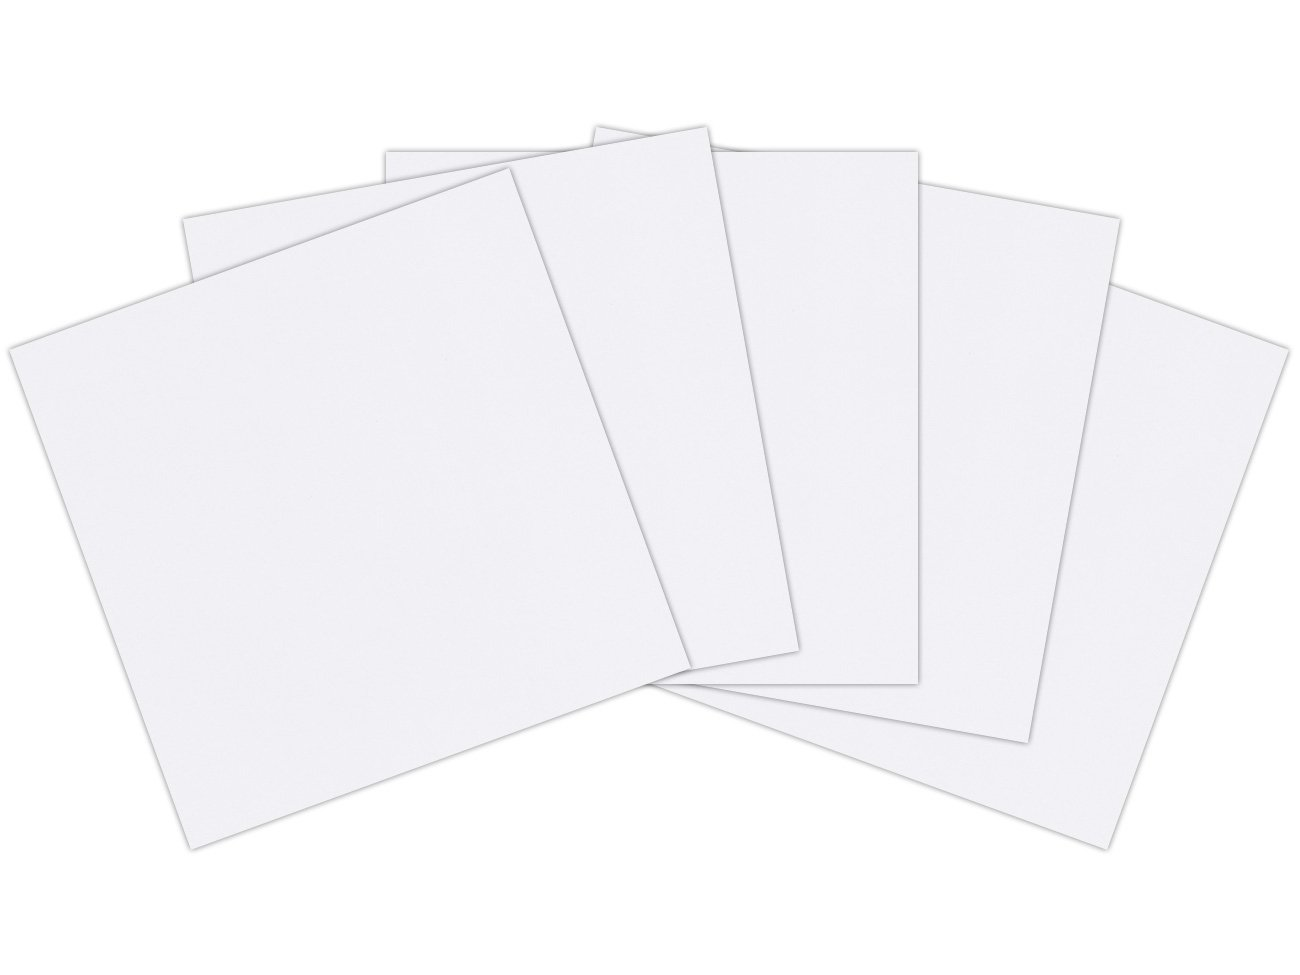 12 x 12 inches (305mm x 305mm) 300gsm 340mic Craft Creations Economy White Cardboard - Sheets Of Acid Free, Smooth, White Card Stock (250) Craft Creations Ltd